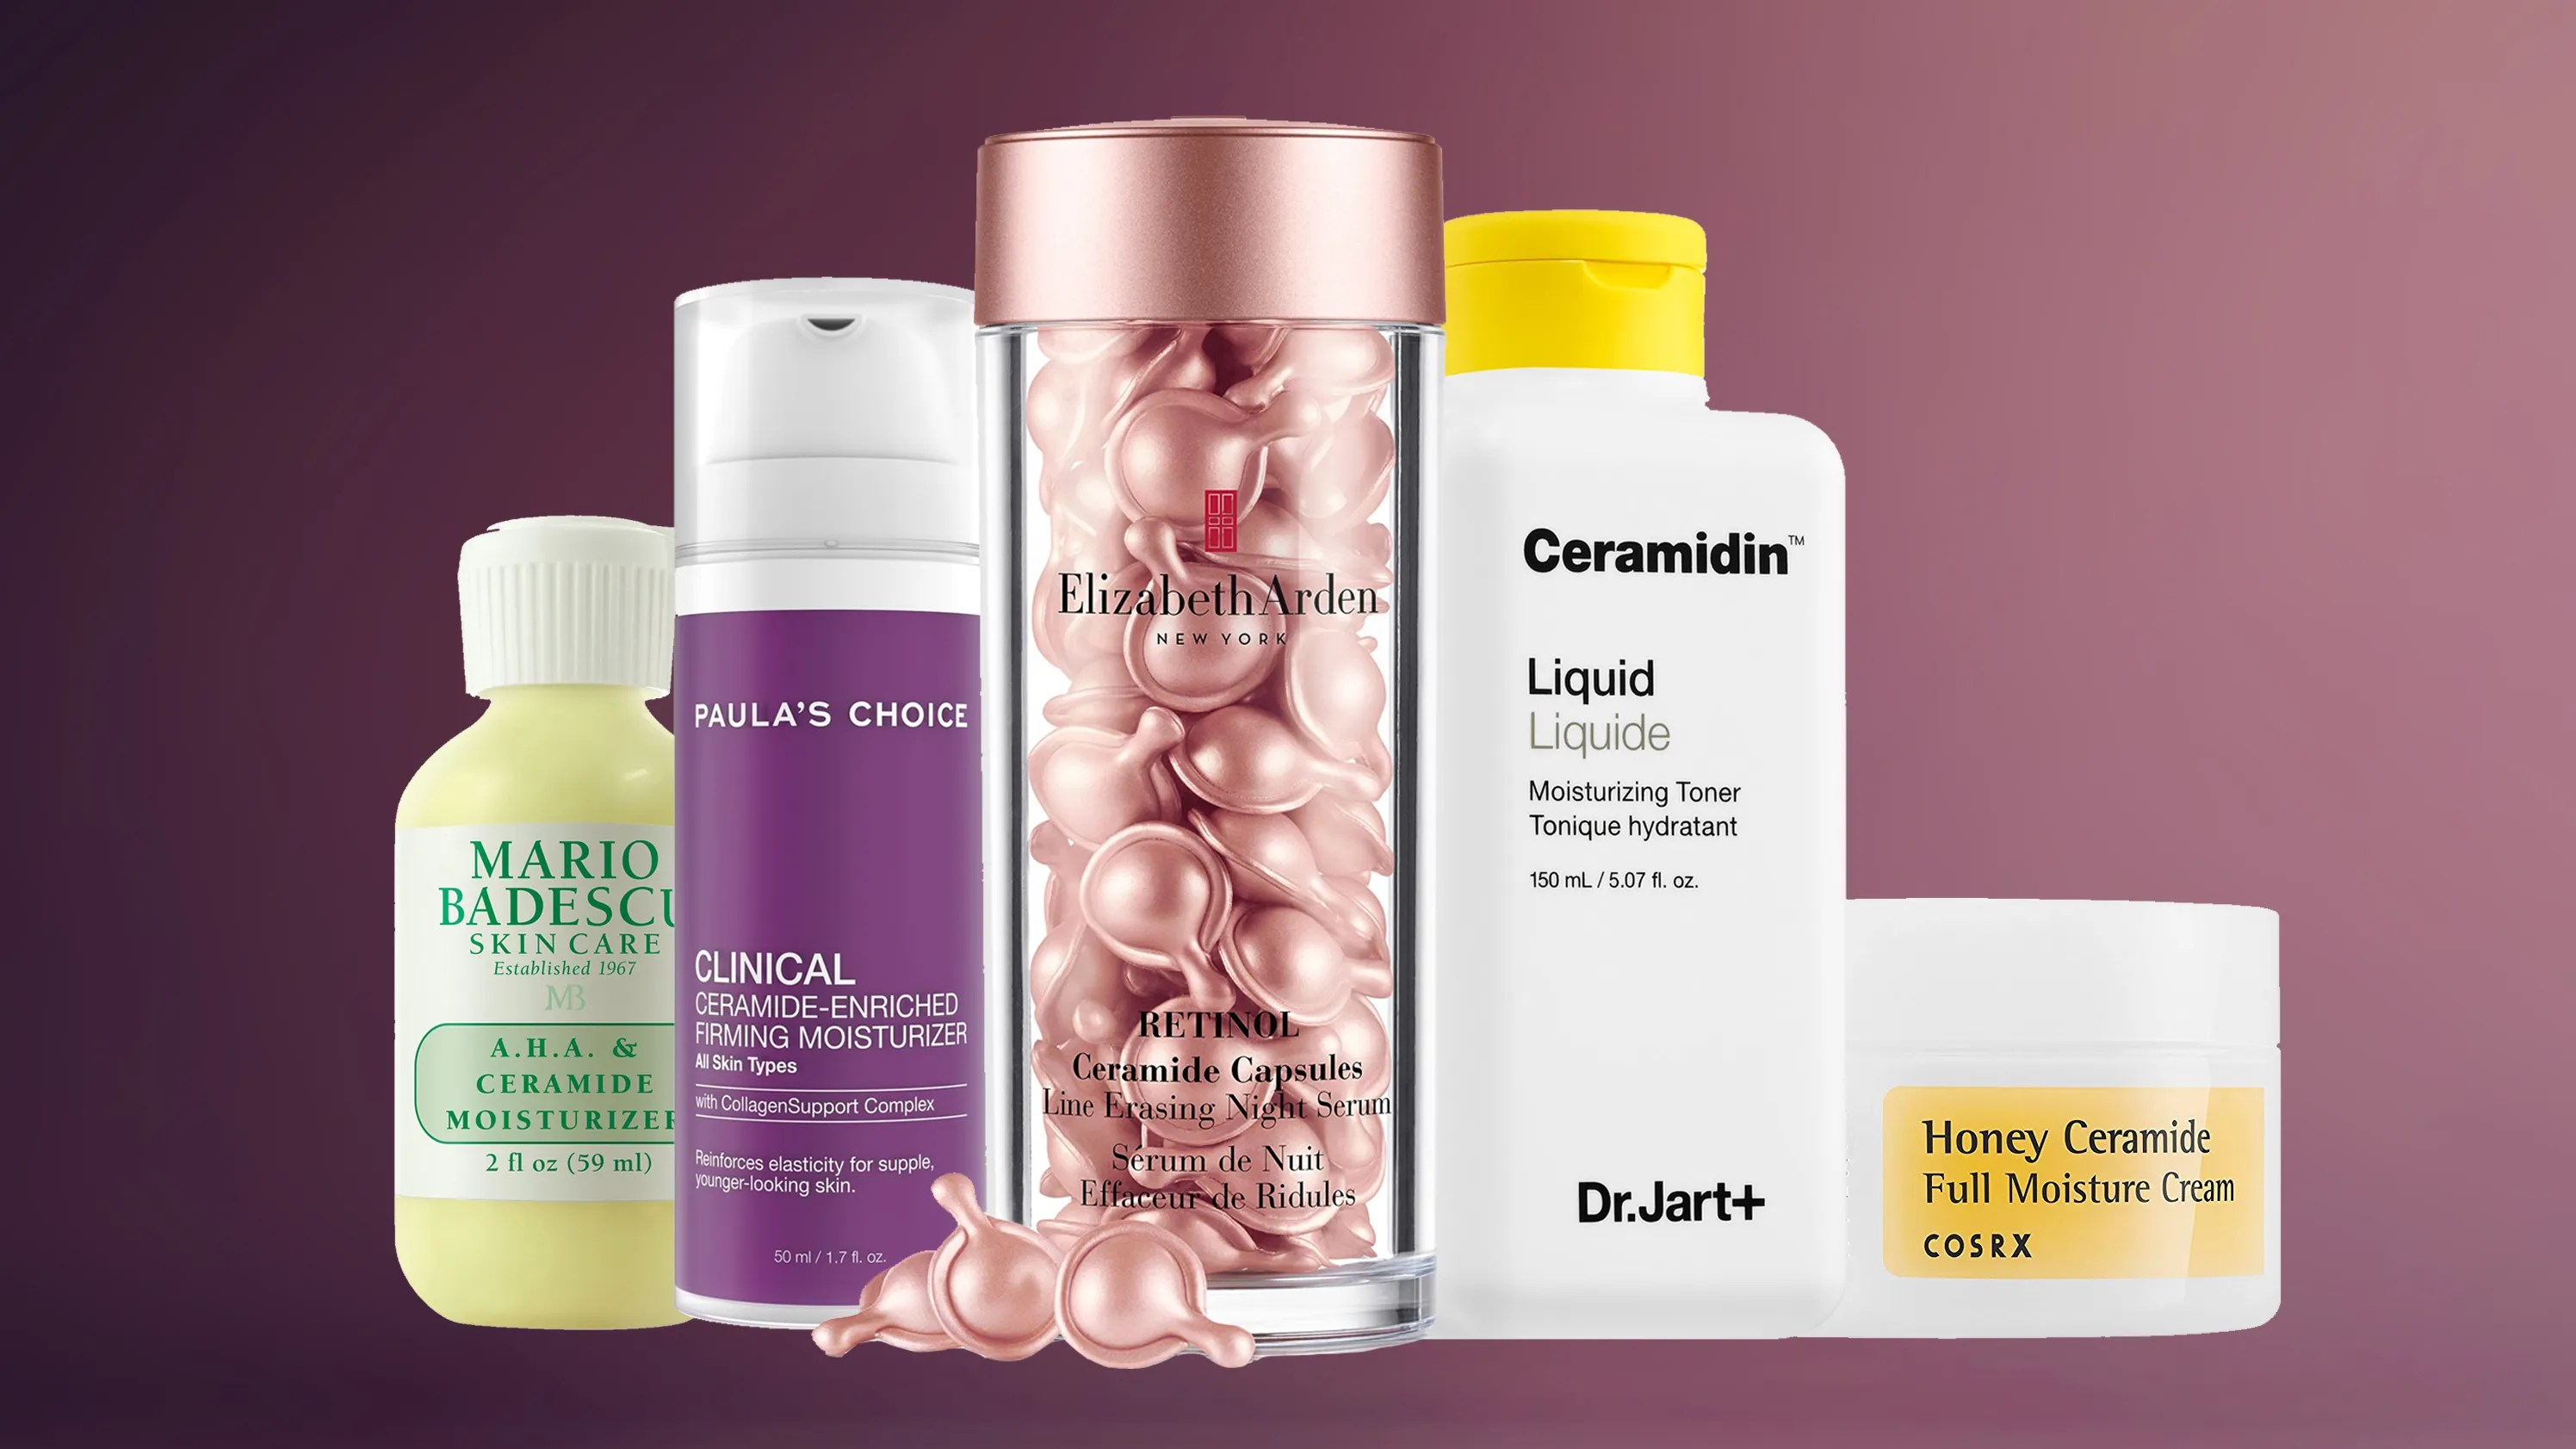 Best Skin Care Cream 13 Best Ceramide Skin Care Products Editor And Expert Reviews